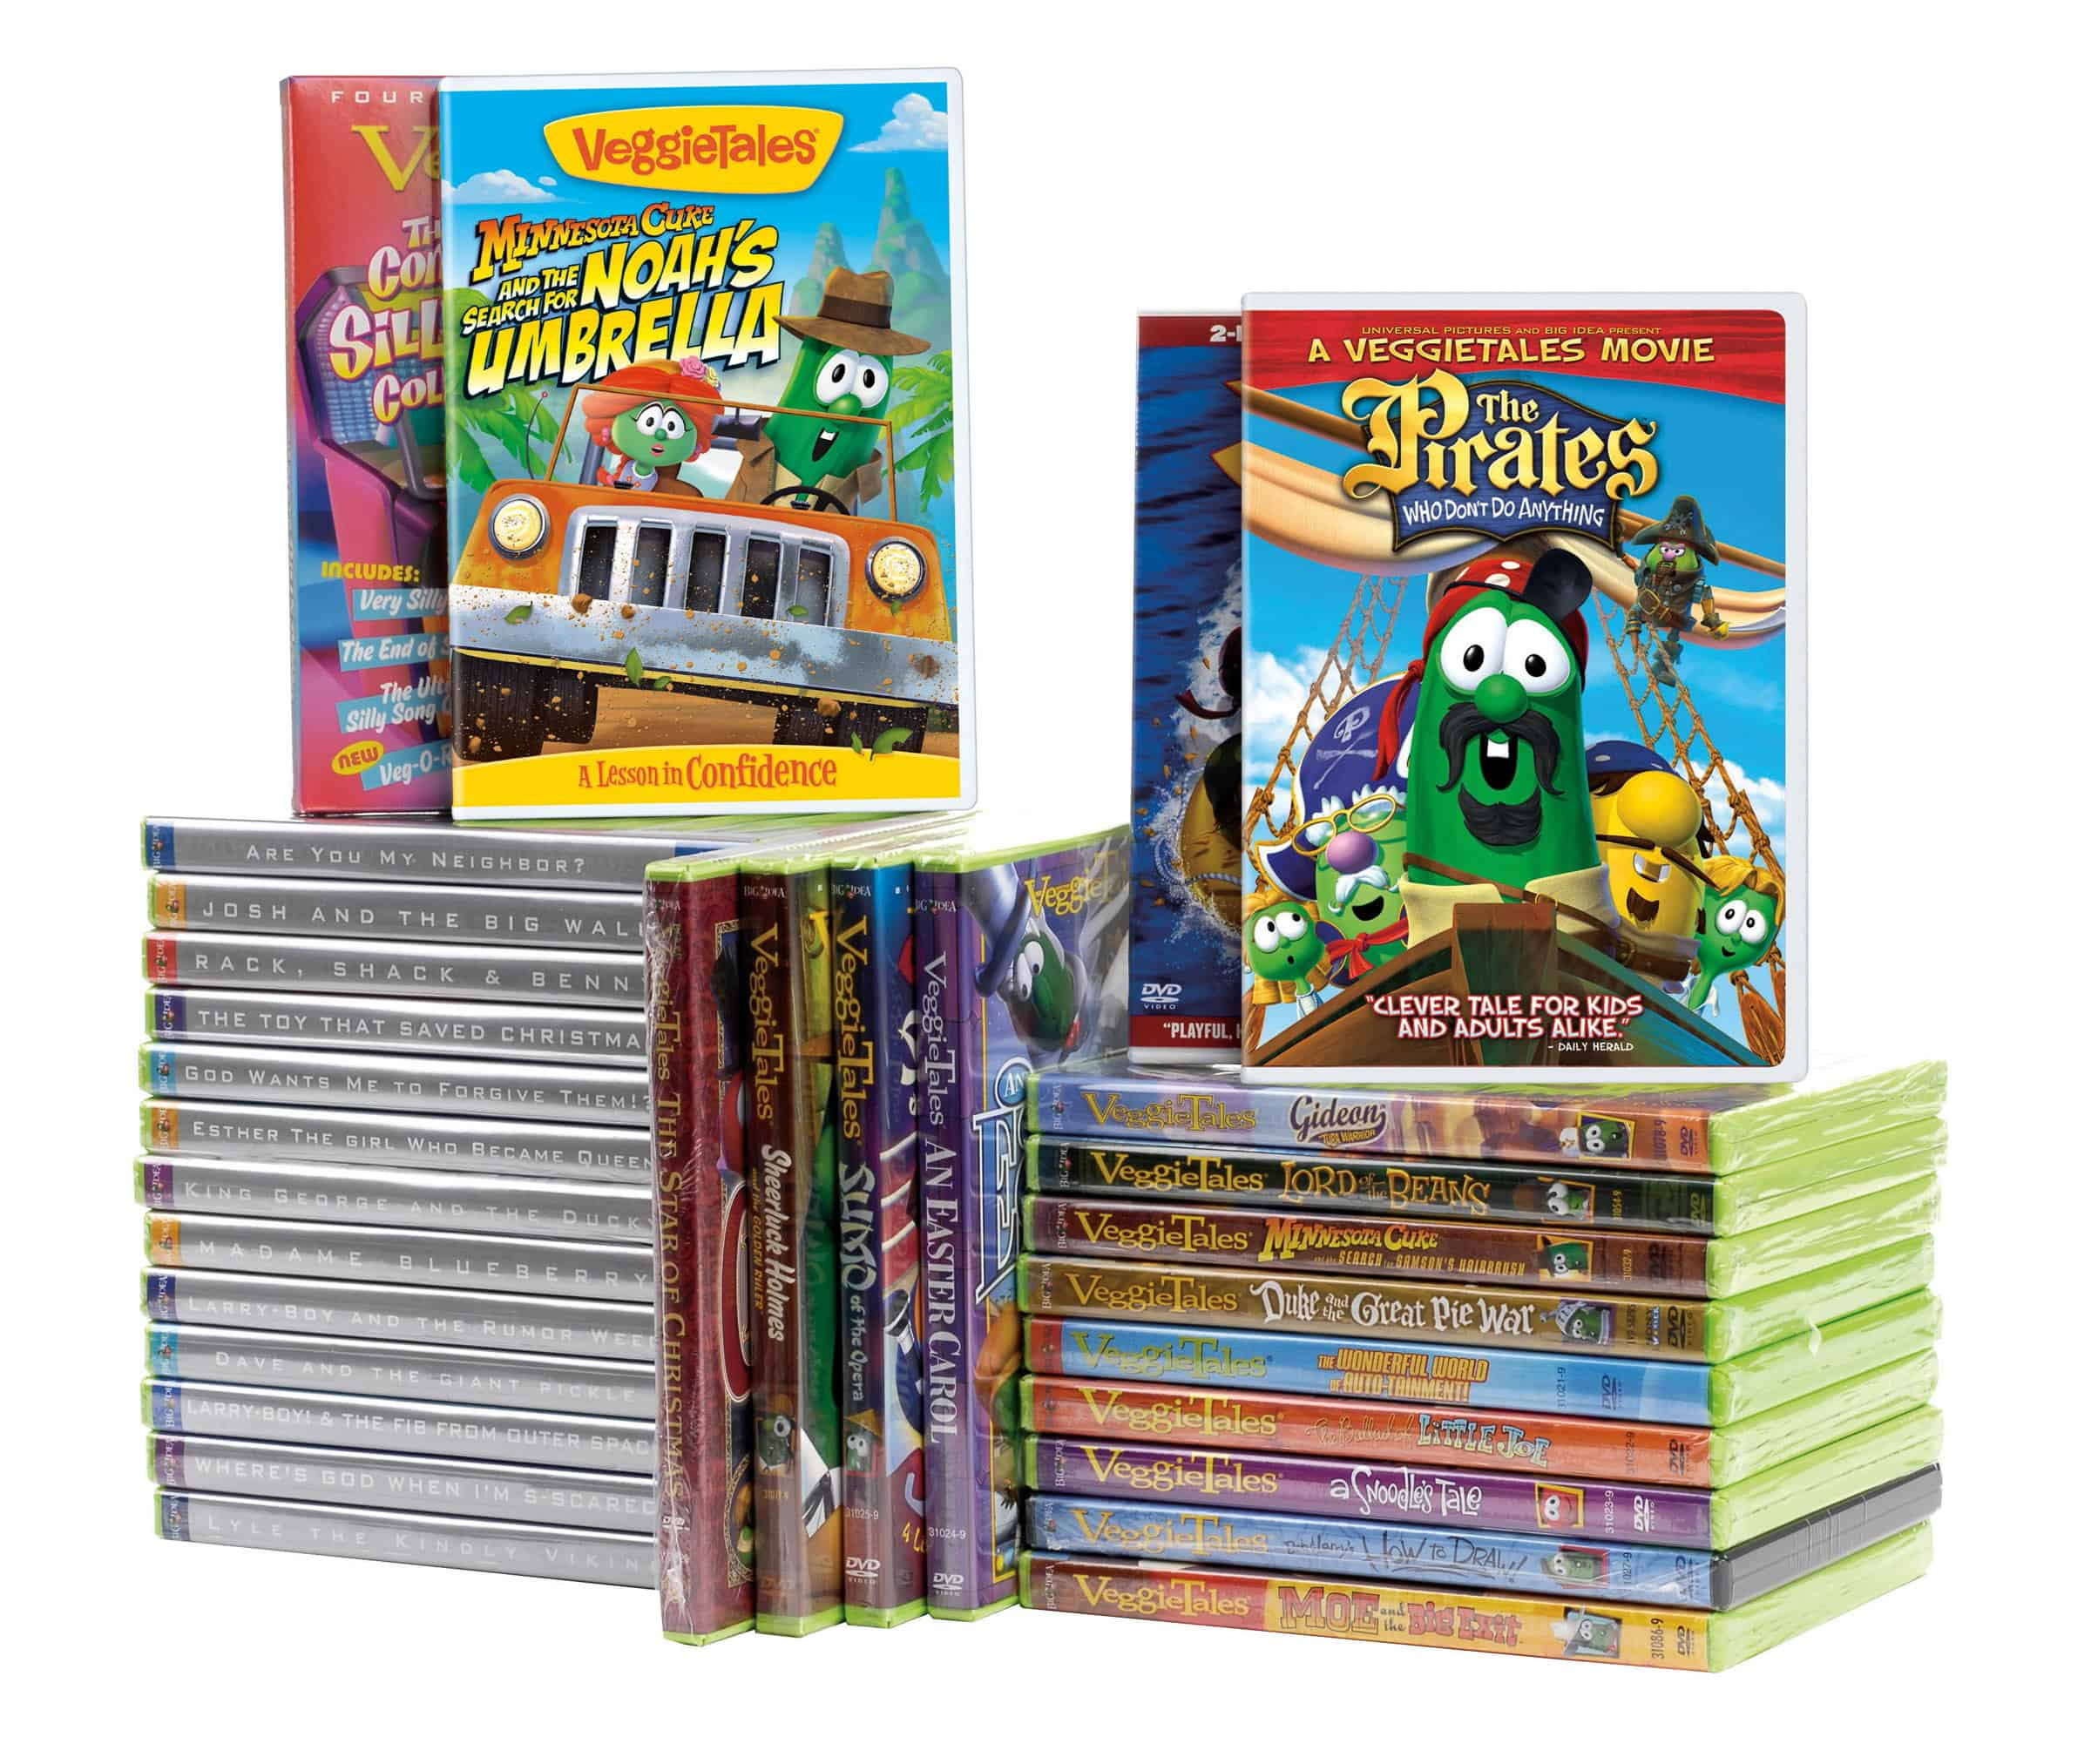 Veggie tales on Pinterest | Veggies, Veggietales and Veggie tales